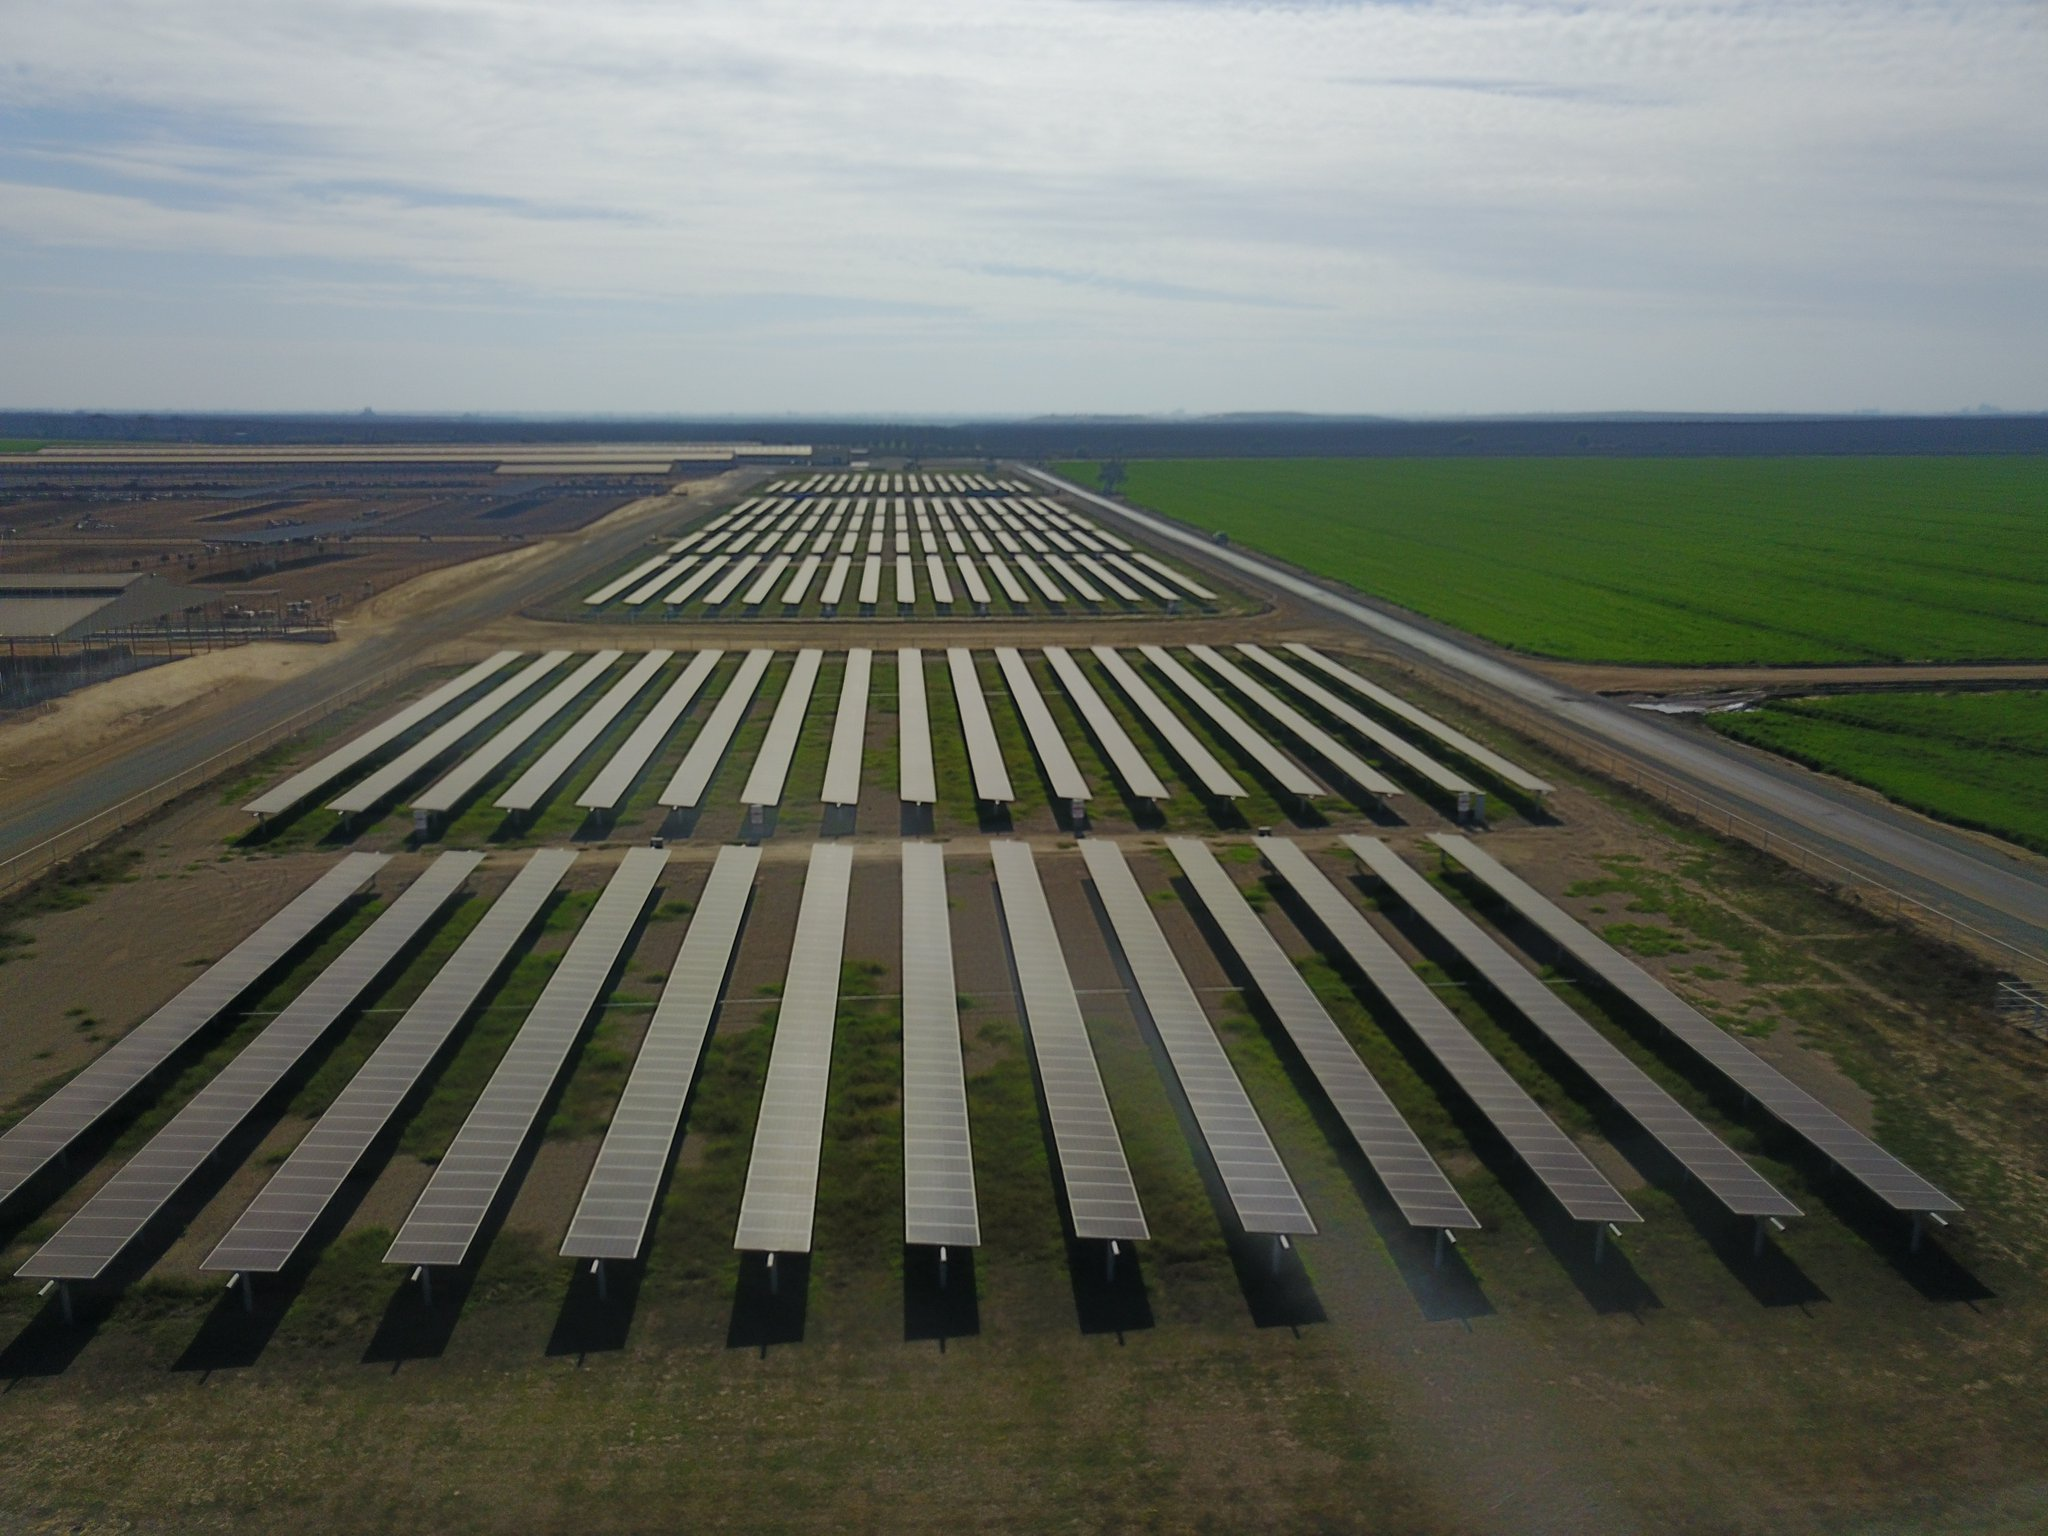 Independent Power Producer sPower has entered into a strategic solar tracker supply deal with Array Technologies for multi-gigawatts of planned PV power plants, cementing a business relationship established over the last four years. Image: Array Technologies